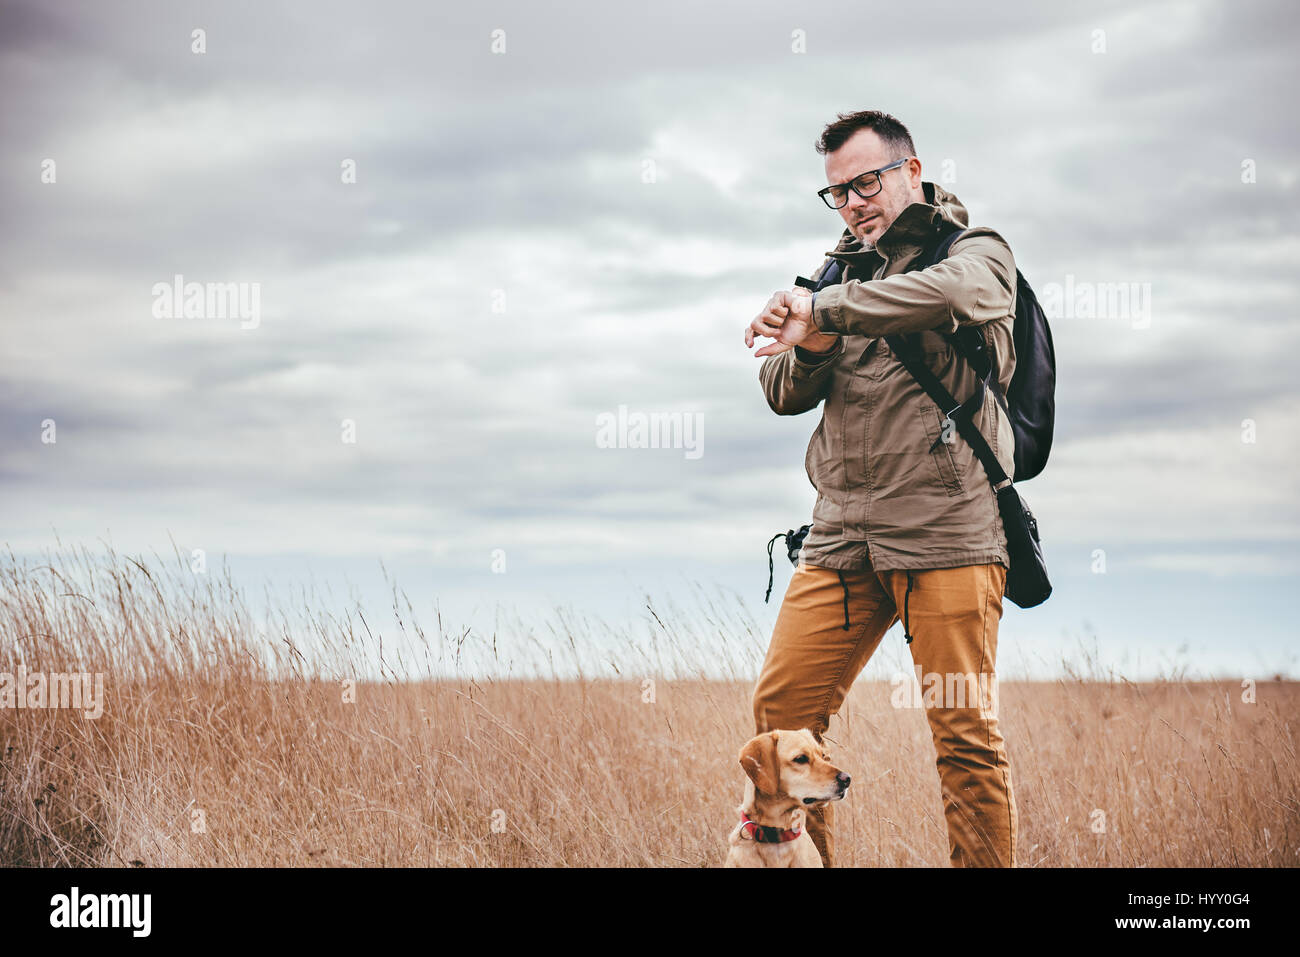 Hiker with dog standing in grassland and looking at watch - Stock Image